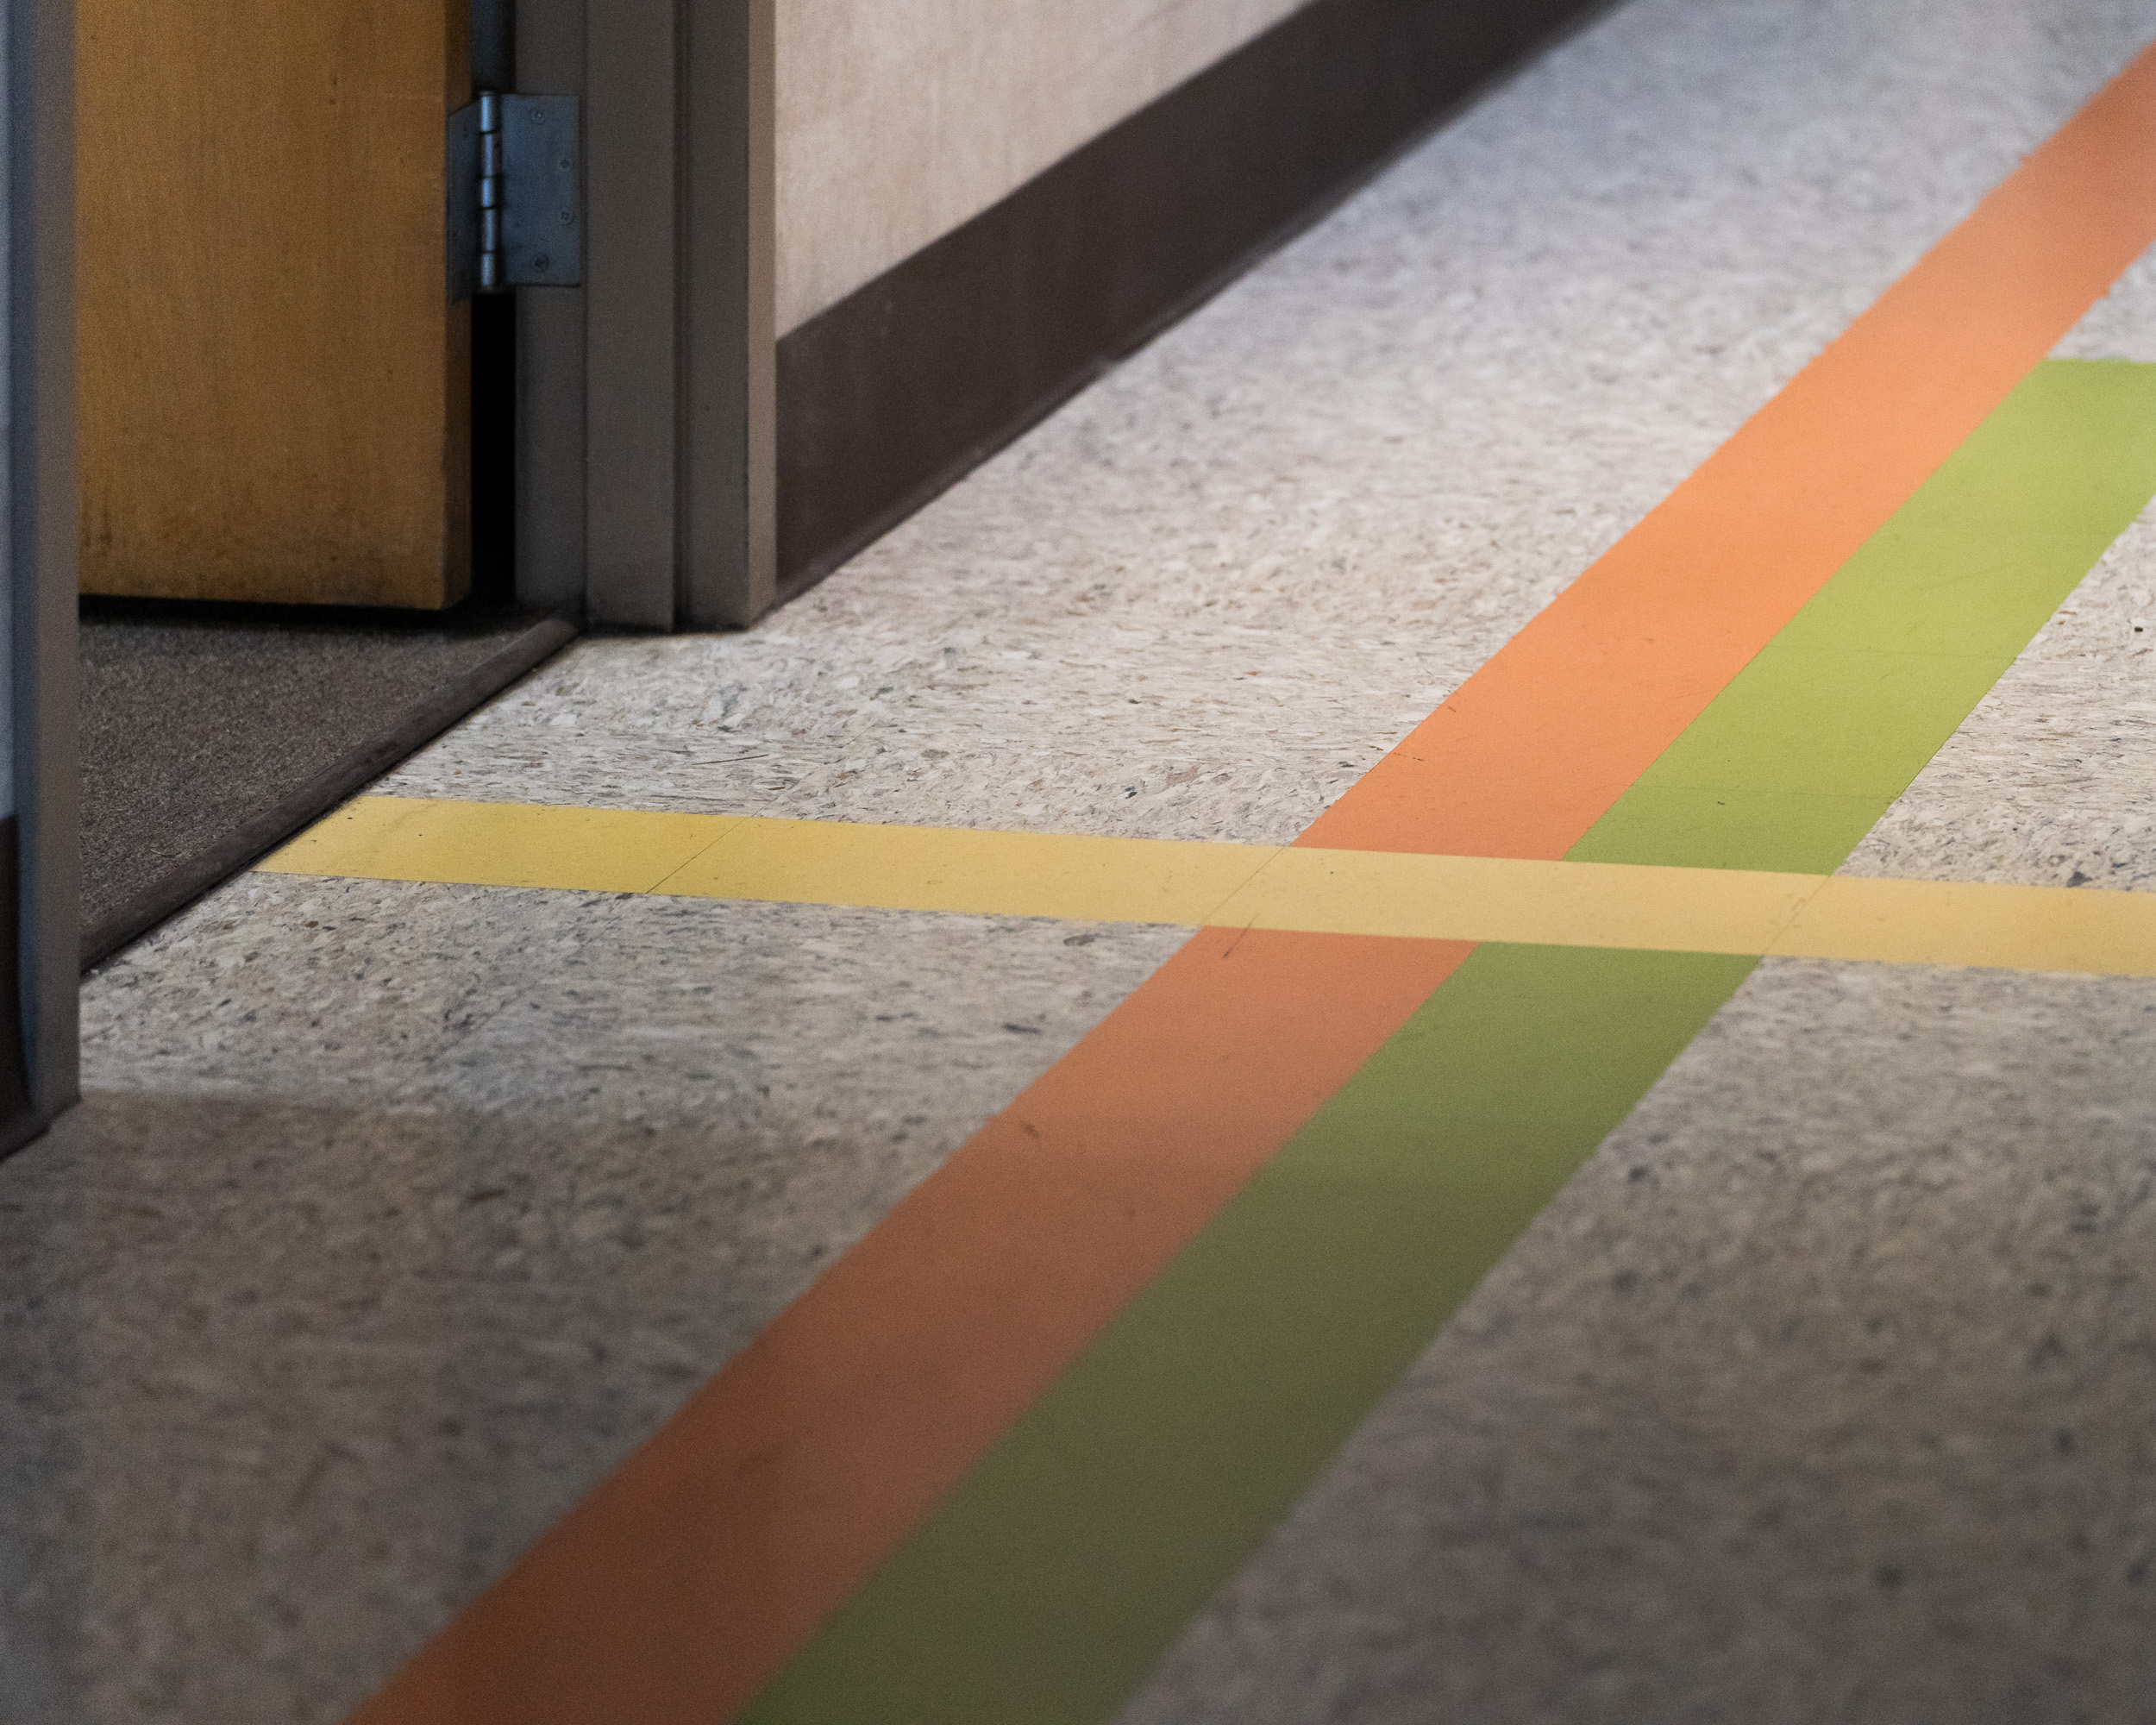 Colored stripes leading to offices